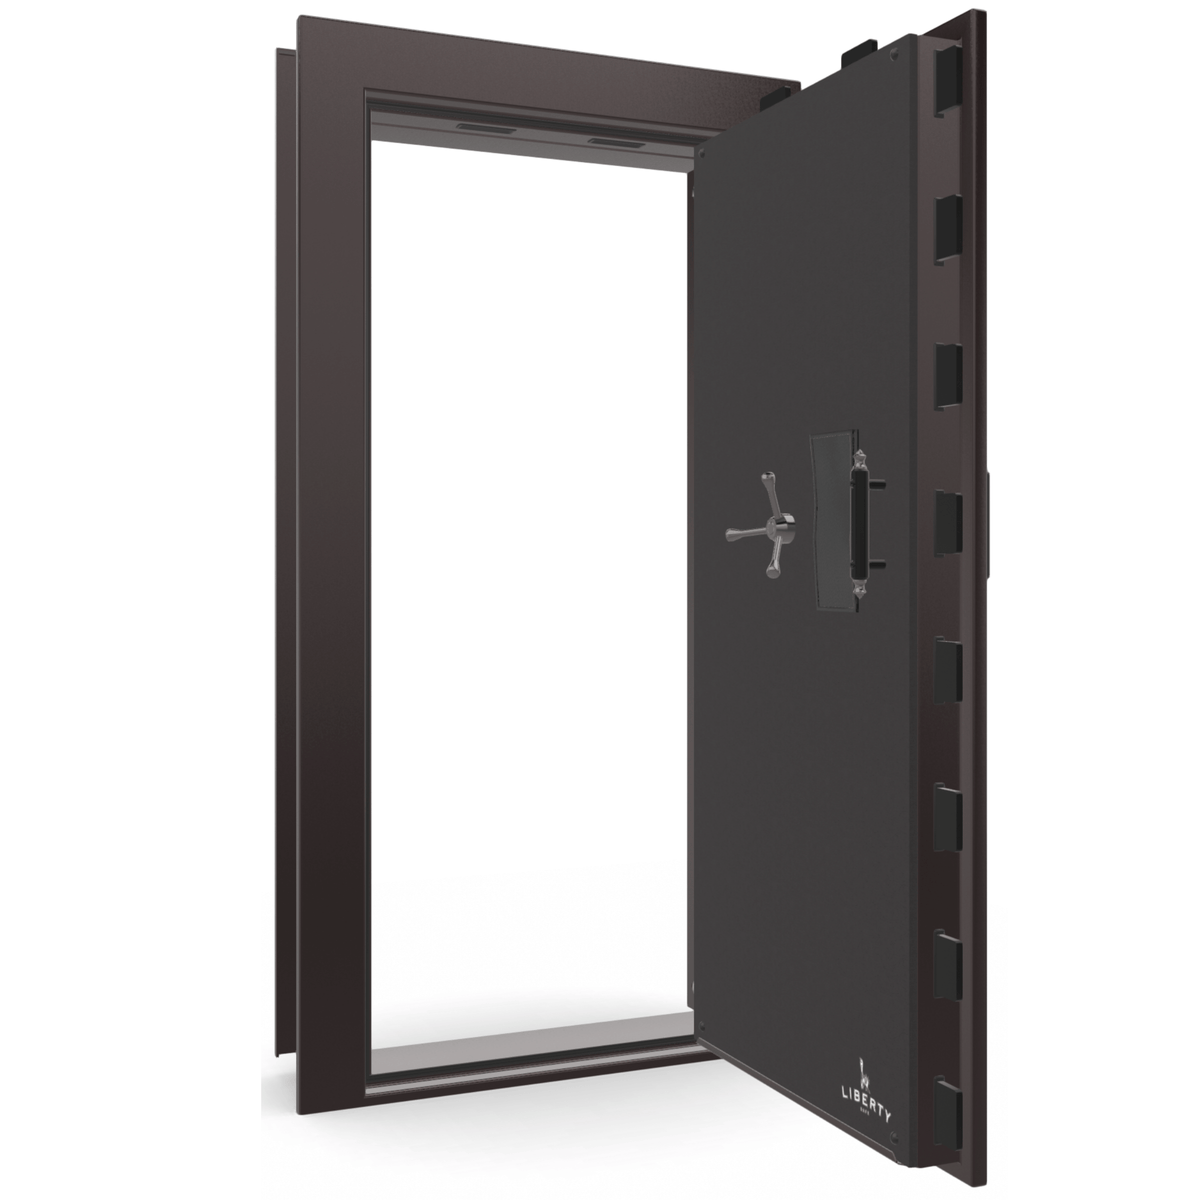 "Vault Door Right Outswing | Black Cherry Gloss | Black Electronic Lock | 81-85""(H) x 27-42""(W) x 7-10""(D)"